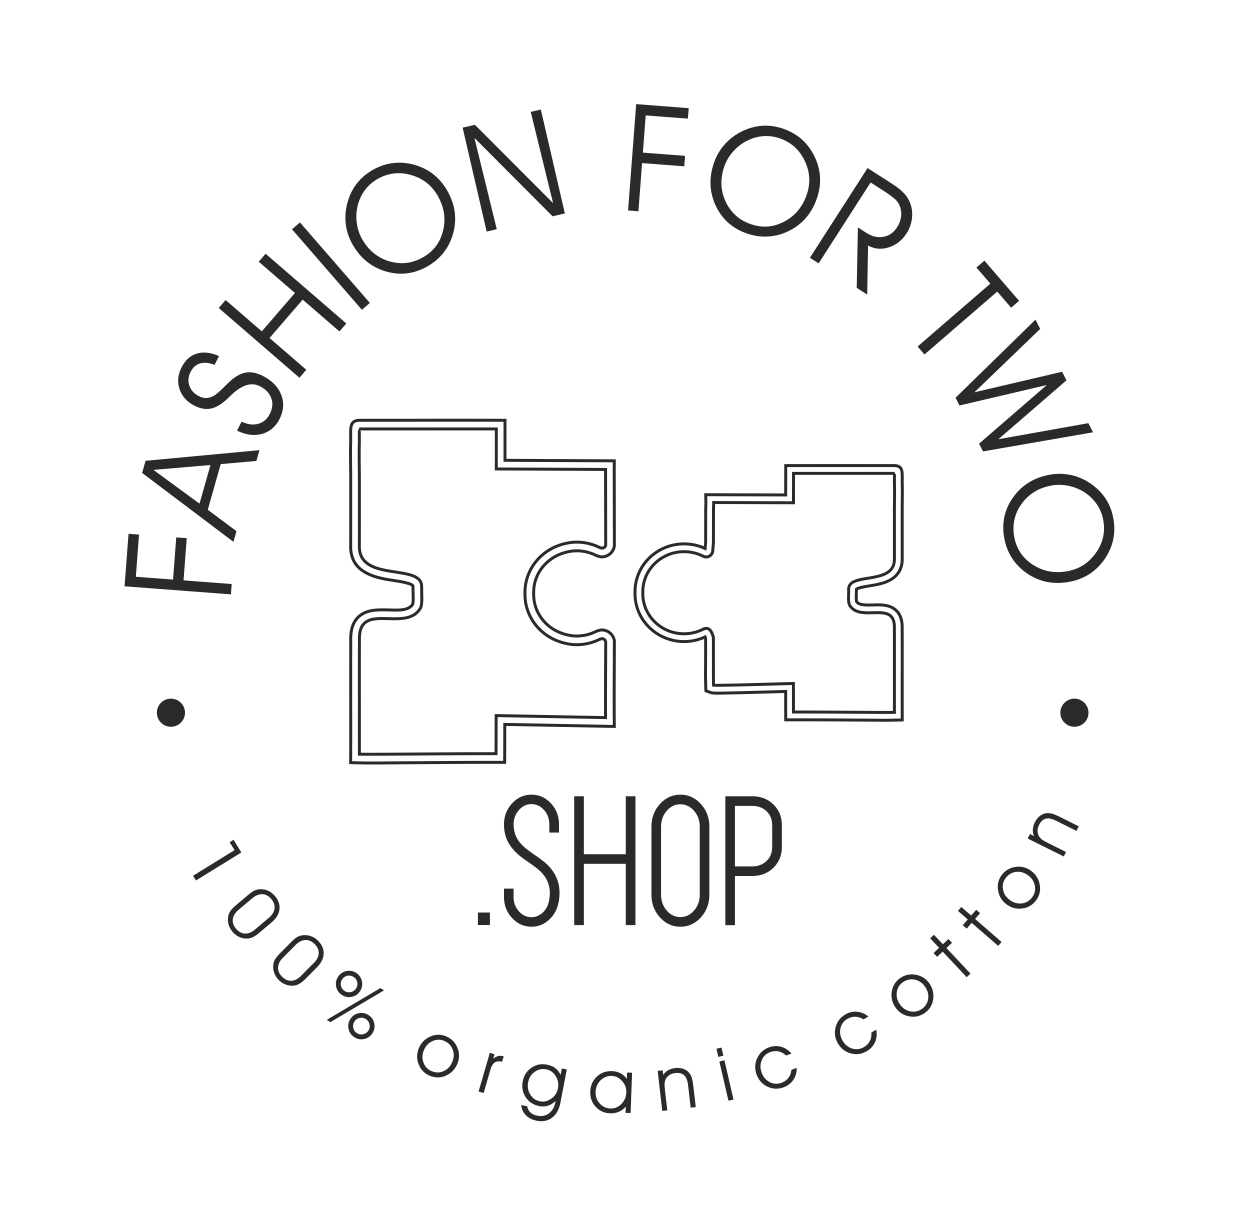 Fashion For Two Shop